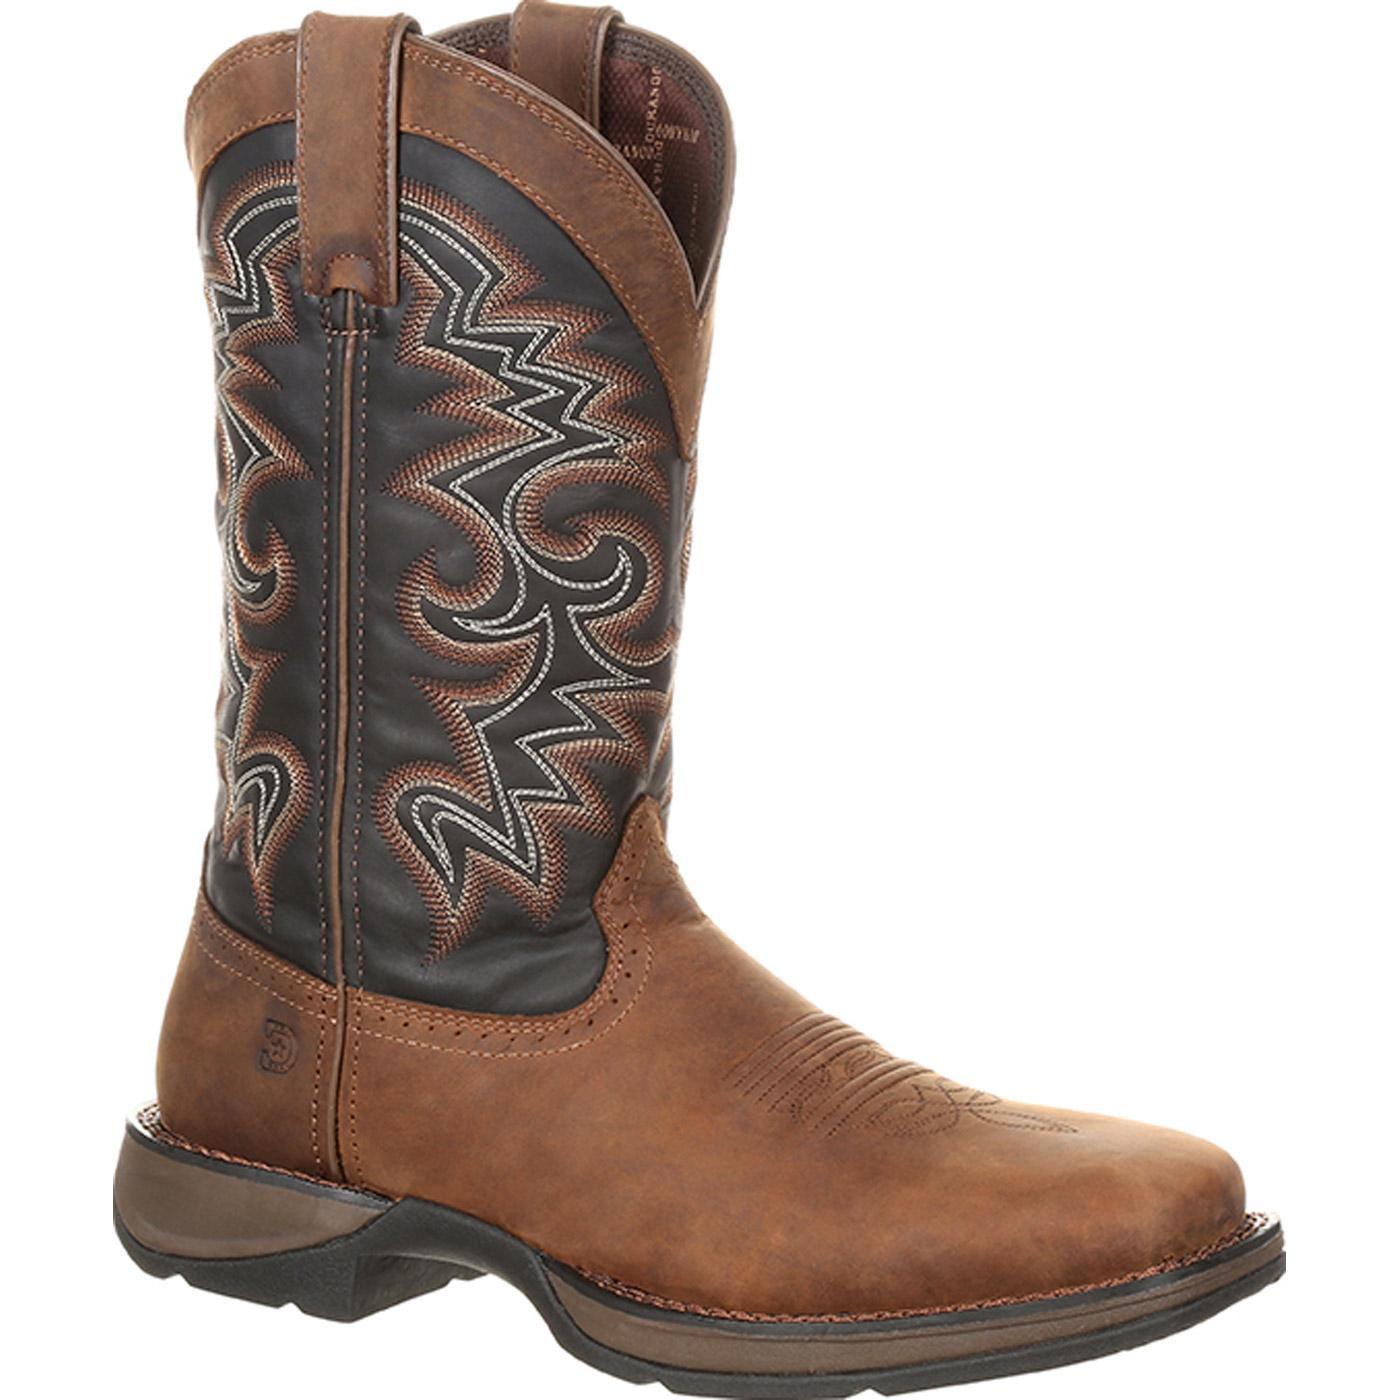 Durango Mens Brown Boots Leather Rebel 11 Inch Pull On Trail